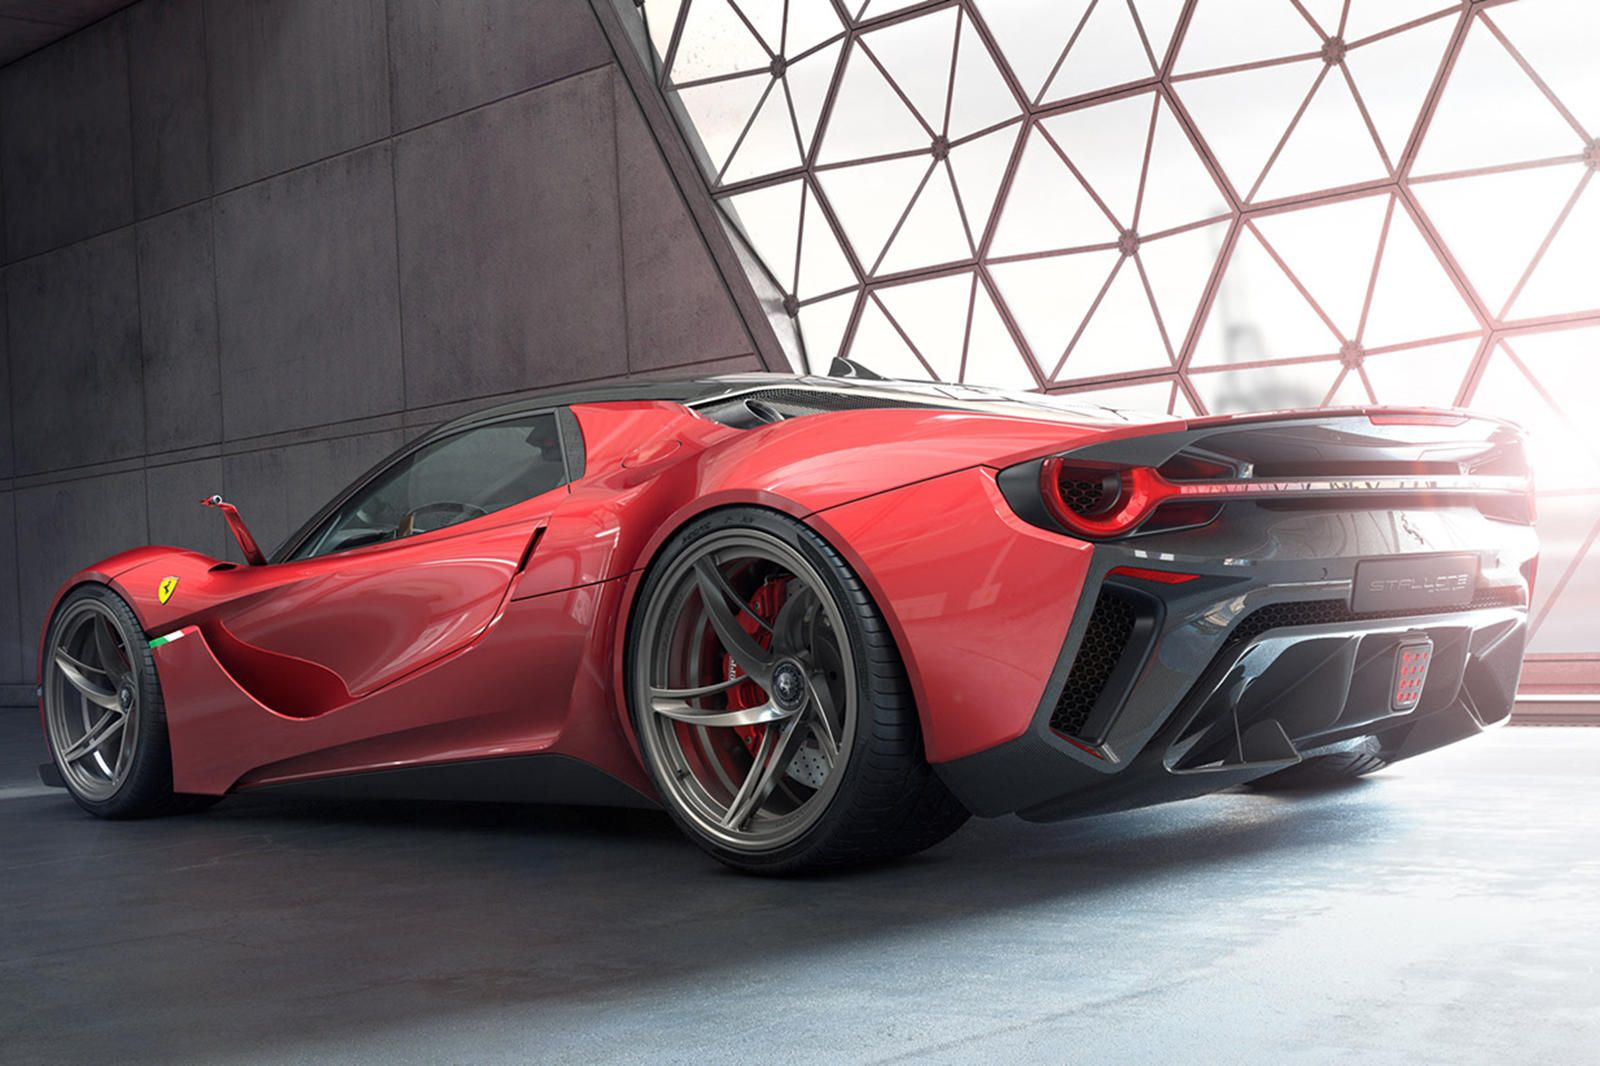 This Is What Ferrari S Next Flagship Hypercar Should Look Like Enzo Ferrari Would Doubtless Approve Of The Stallone In 2020 Concept Cars Super Cars Ferrari